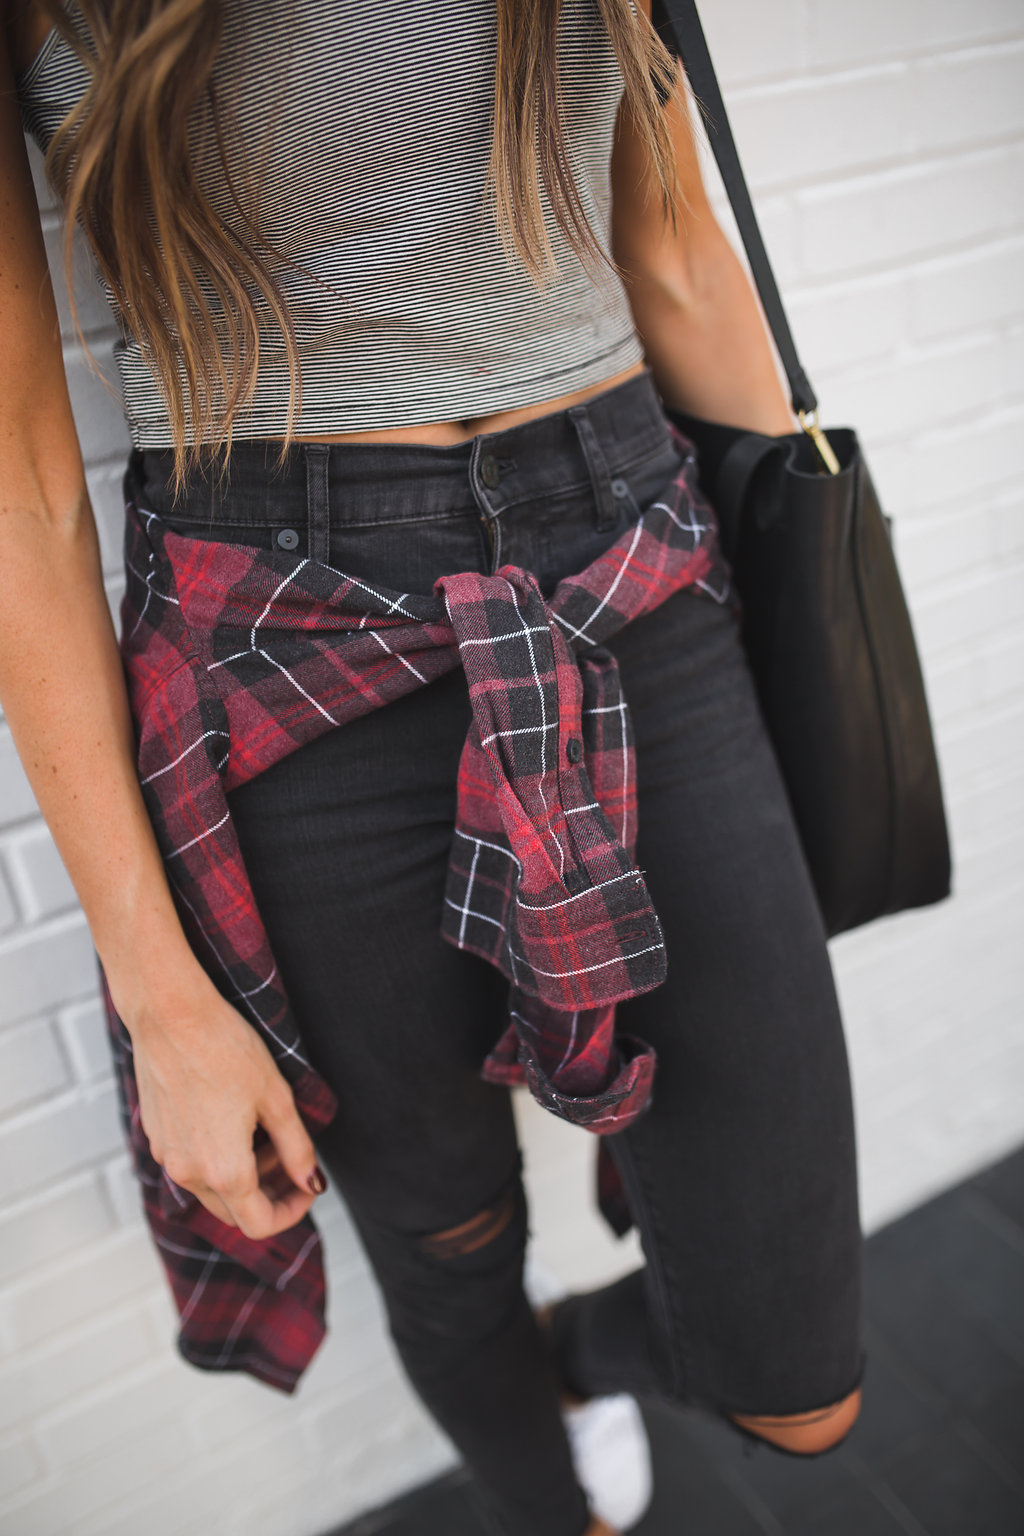 a9922859b08dc madewell athleisure + october event - Lauren Kay Sims